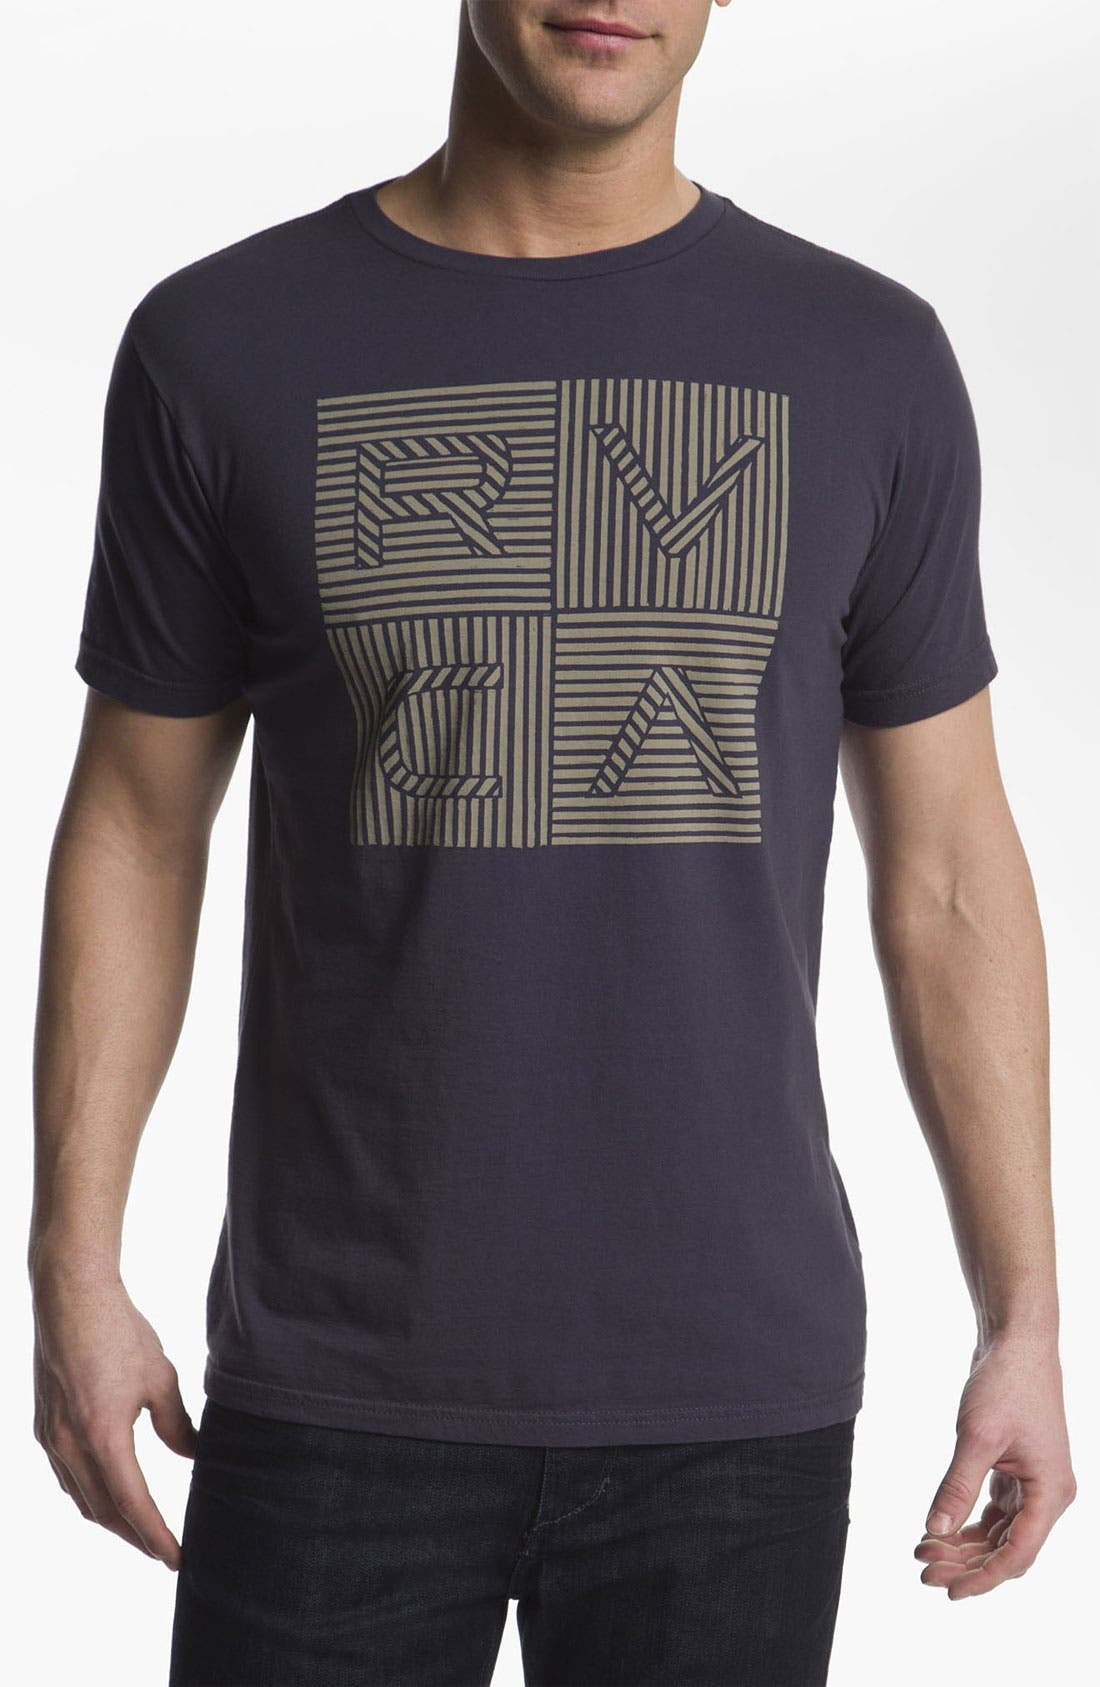 Alternate Image 1 Selected - RVCA 'Lines & Lines' T-Shirt